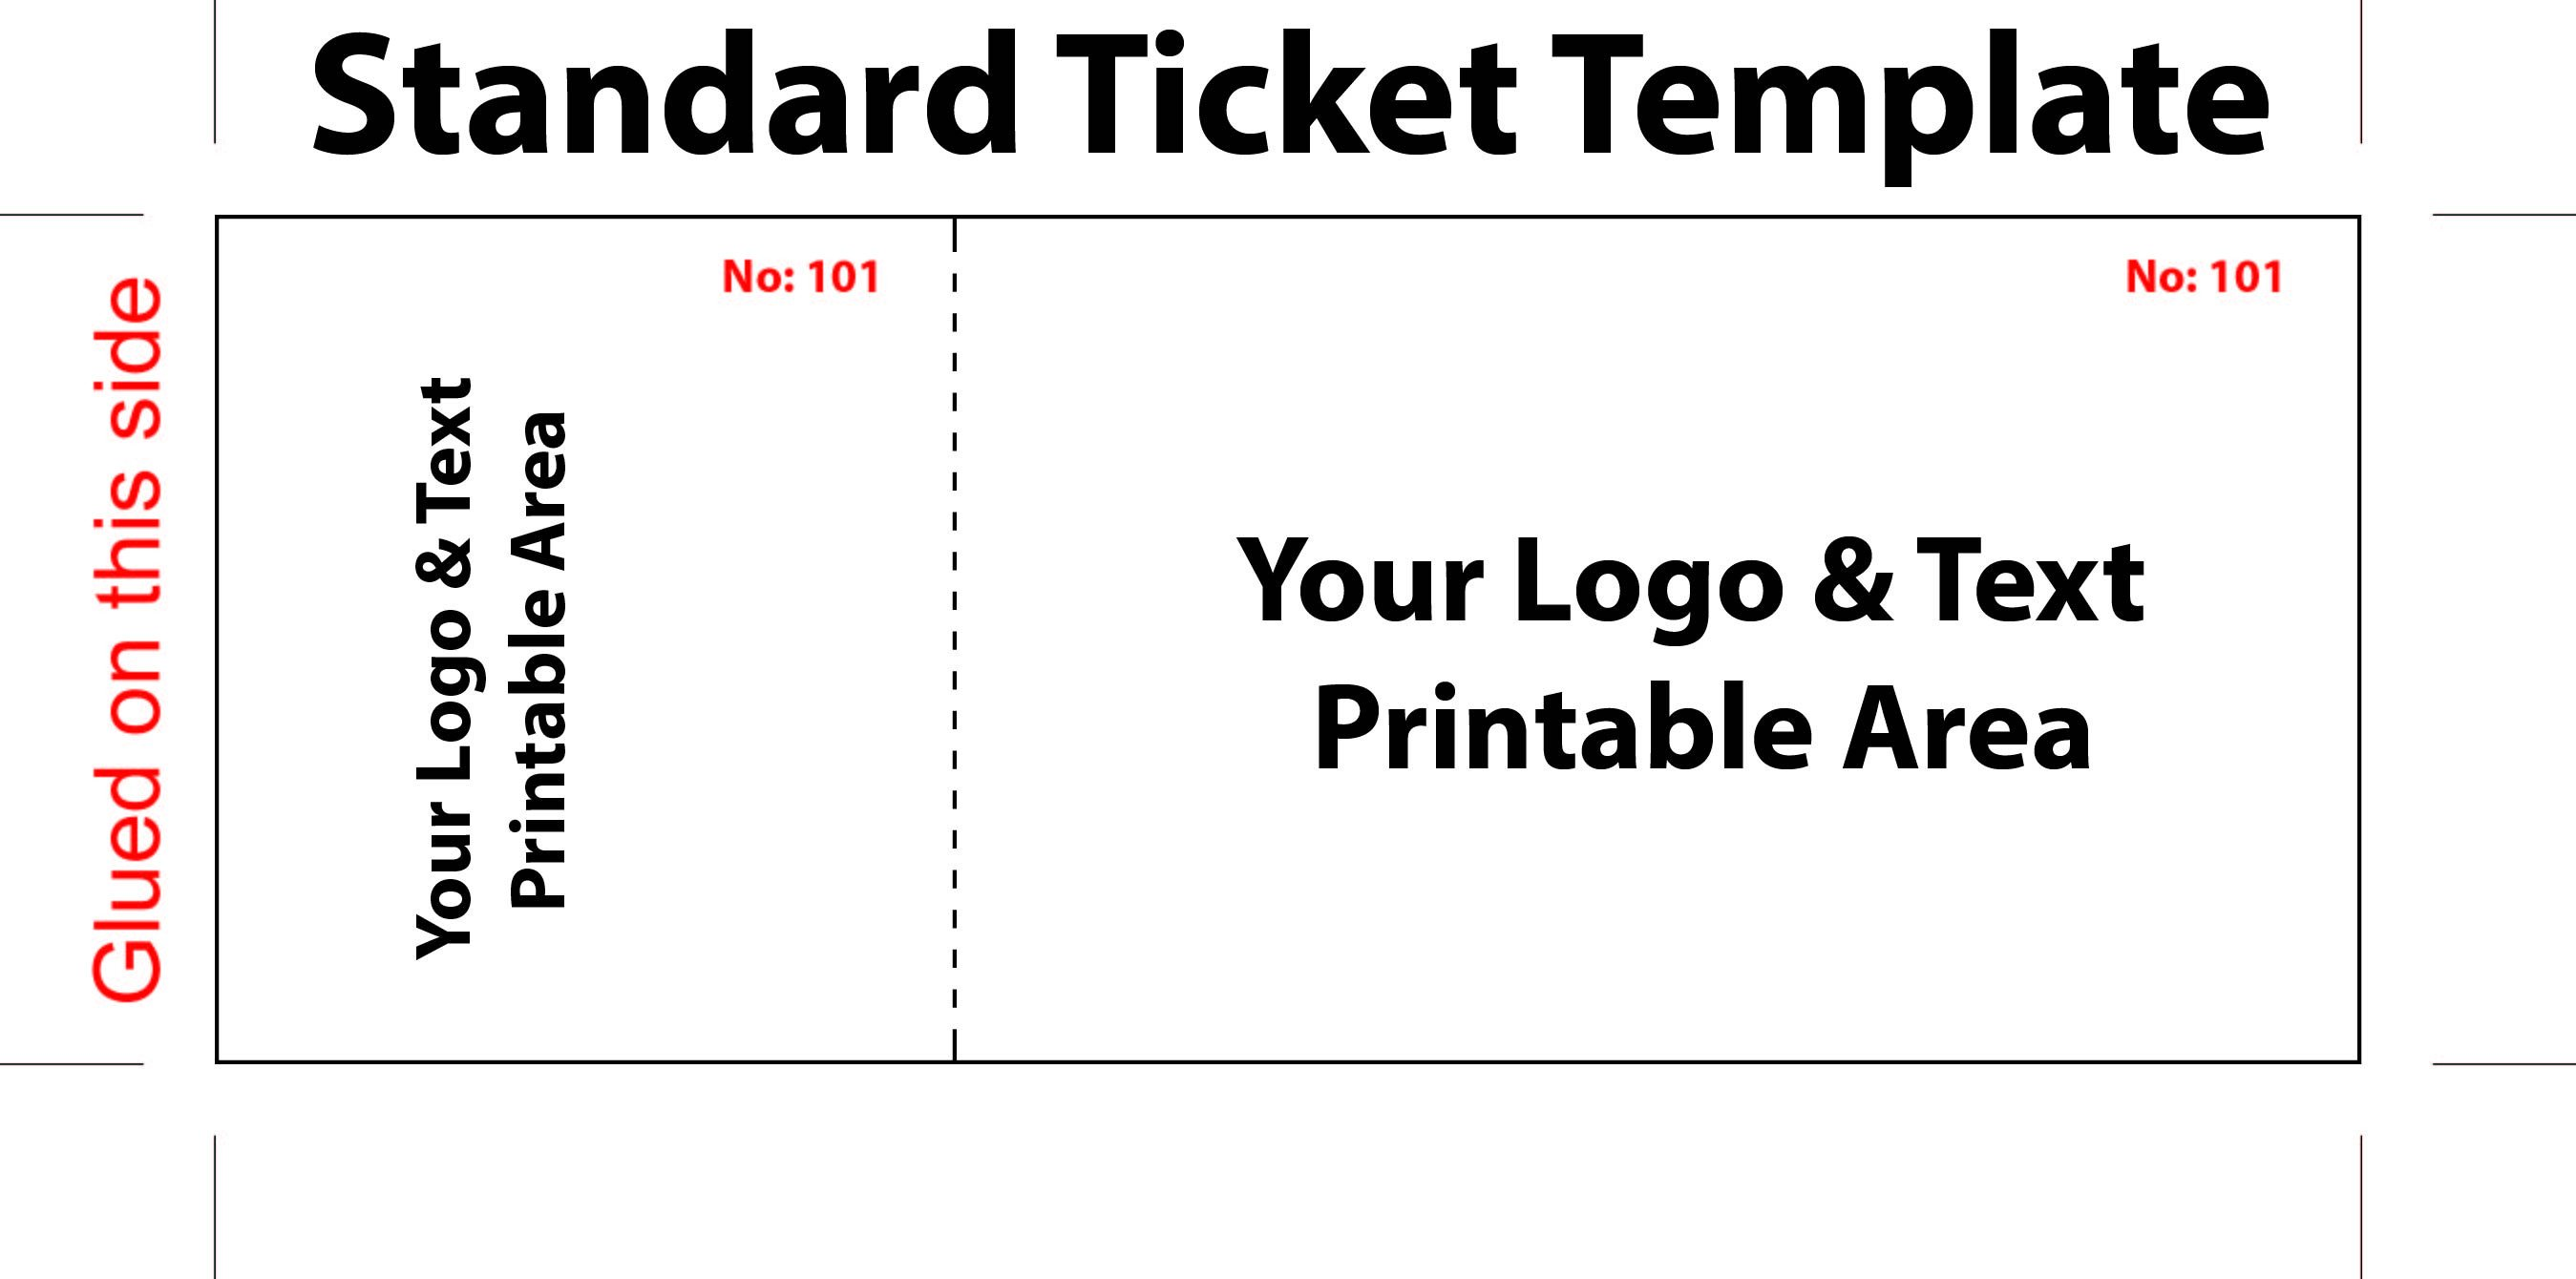 Free event Ticket Template Free Editable Standard Ticket Template Example for Concert